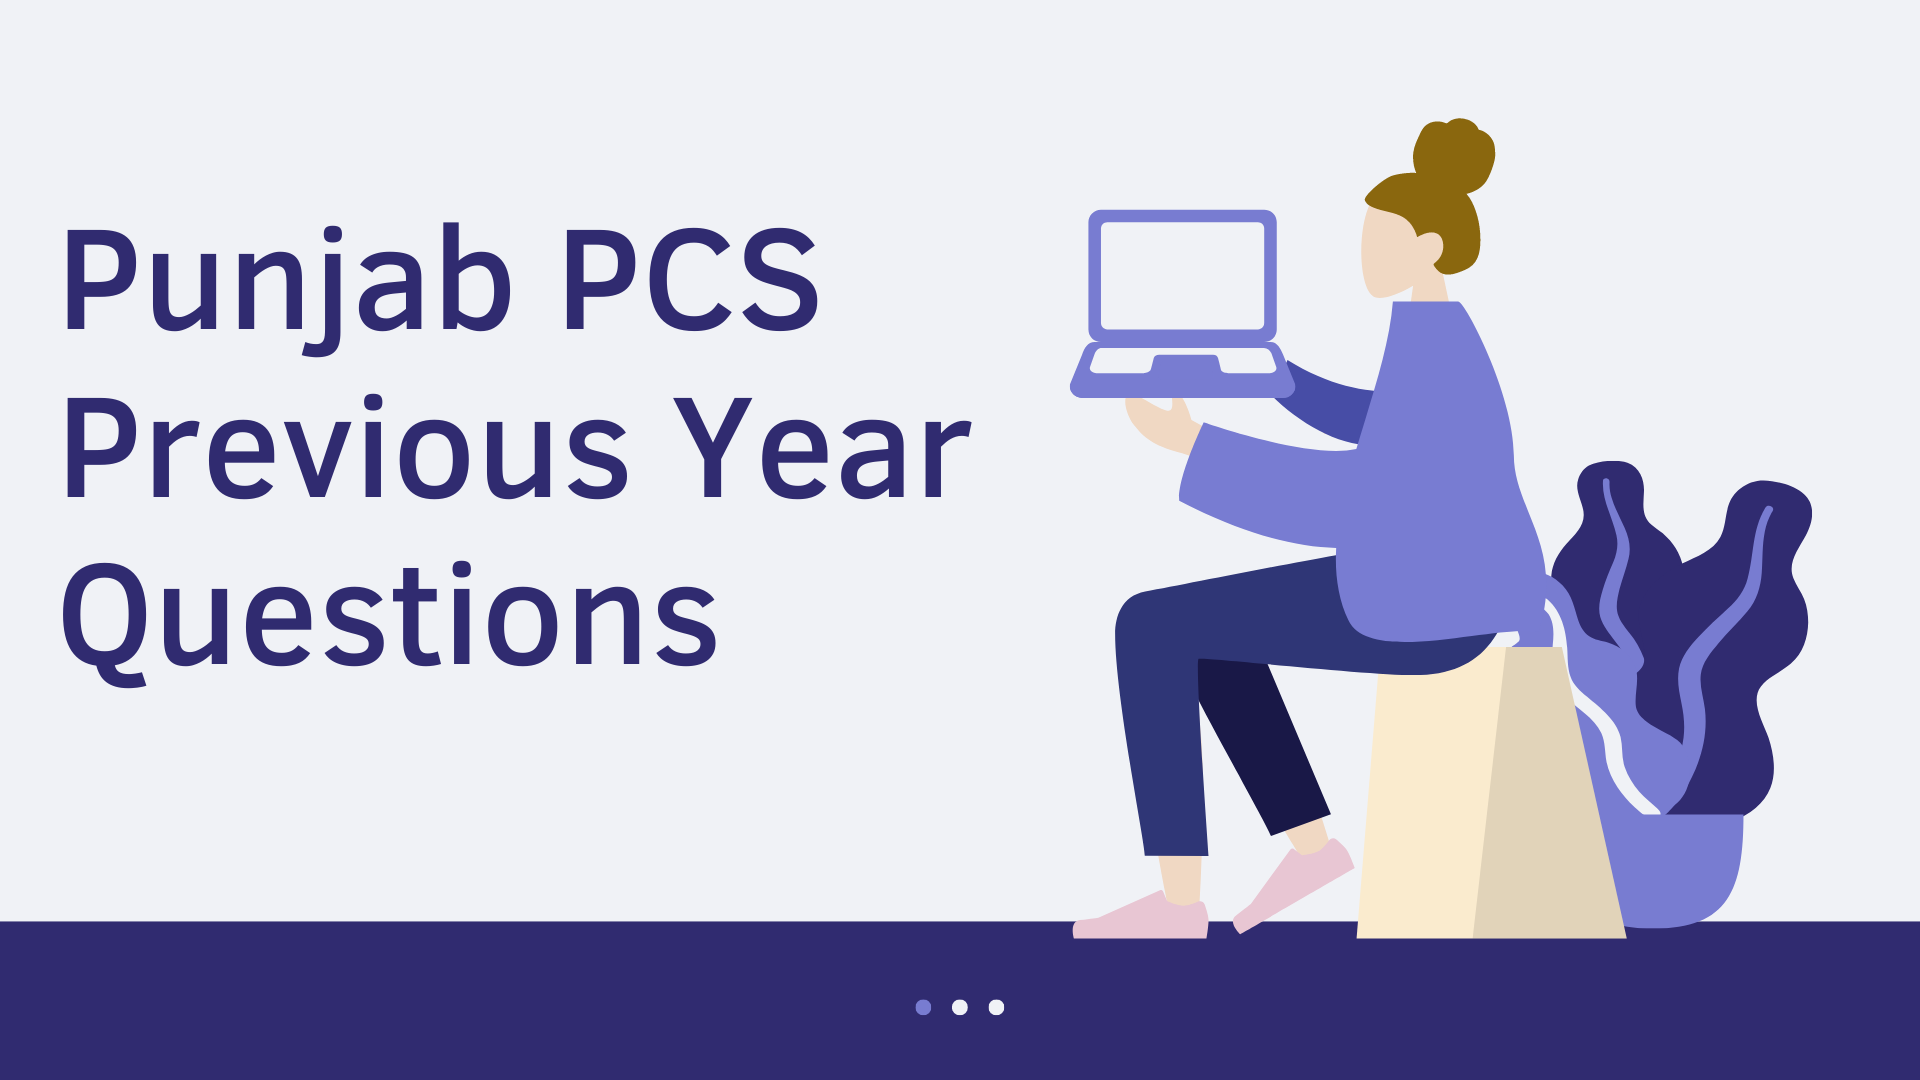 Punjab PCS 2021 Previous Year questions: Part 4